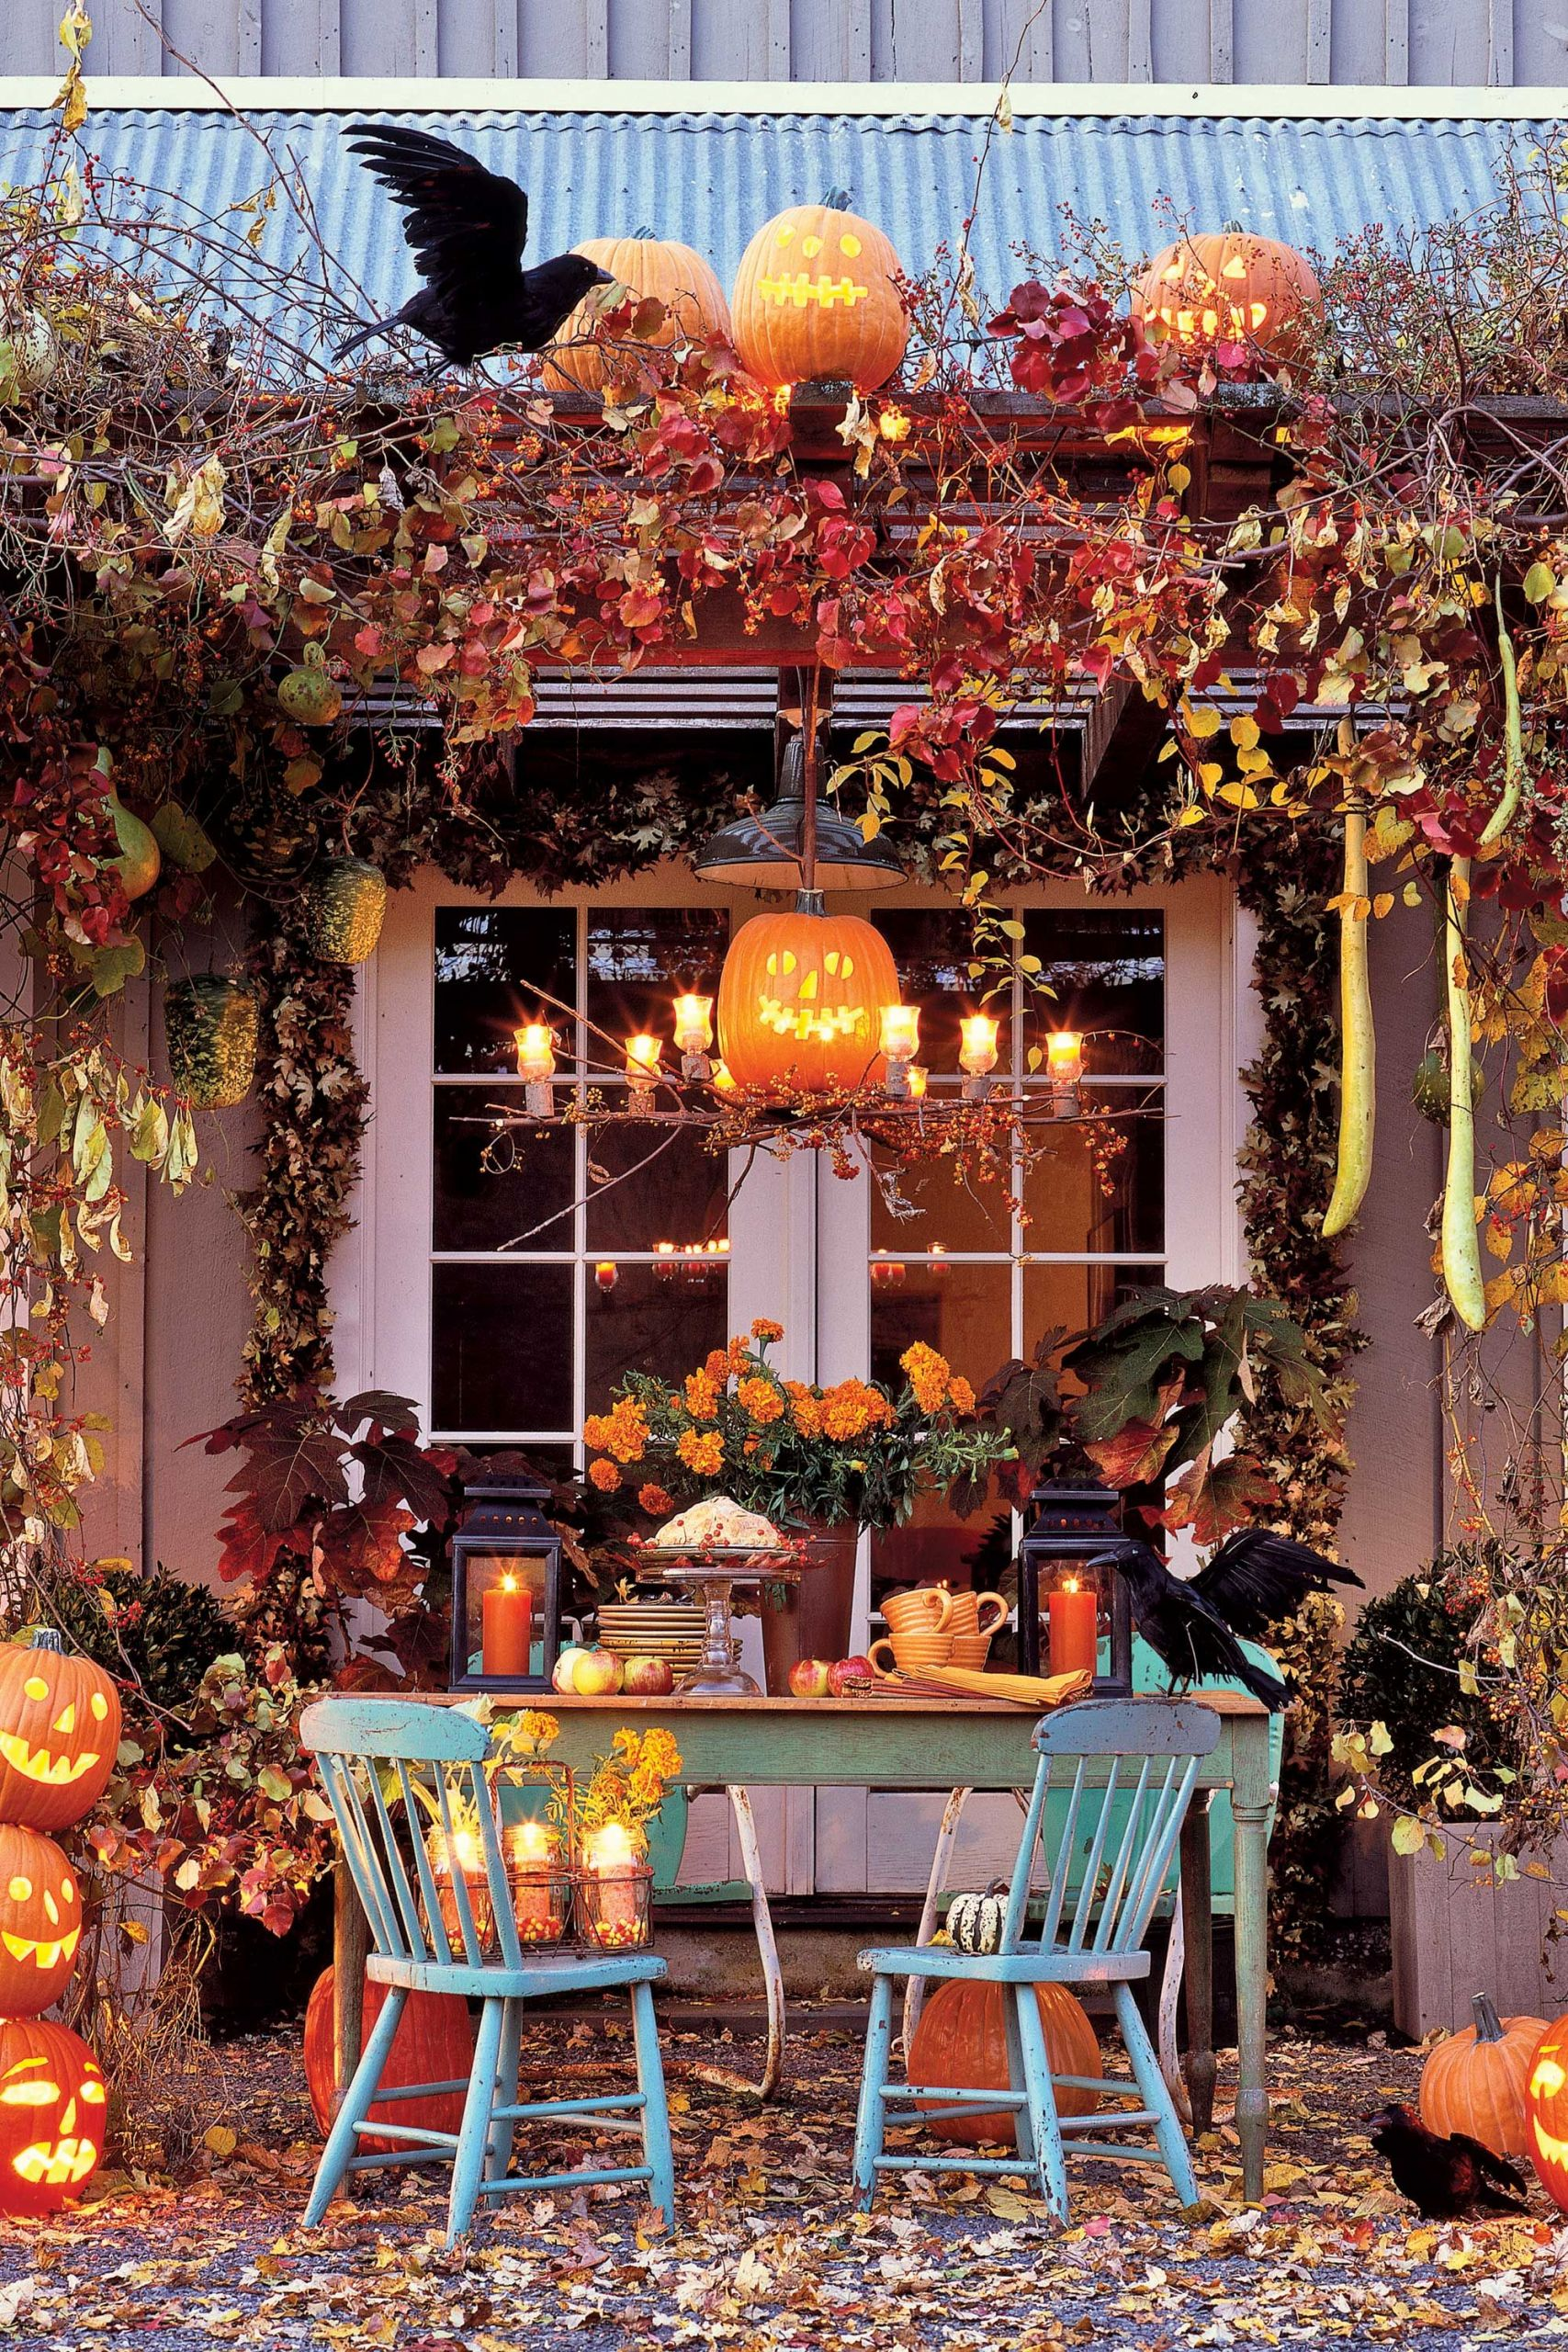 Deko Halloween Einzigartig Cast A Spell On Your Neighbors with these Diy Outdoor